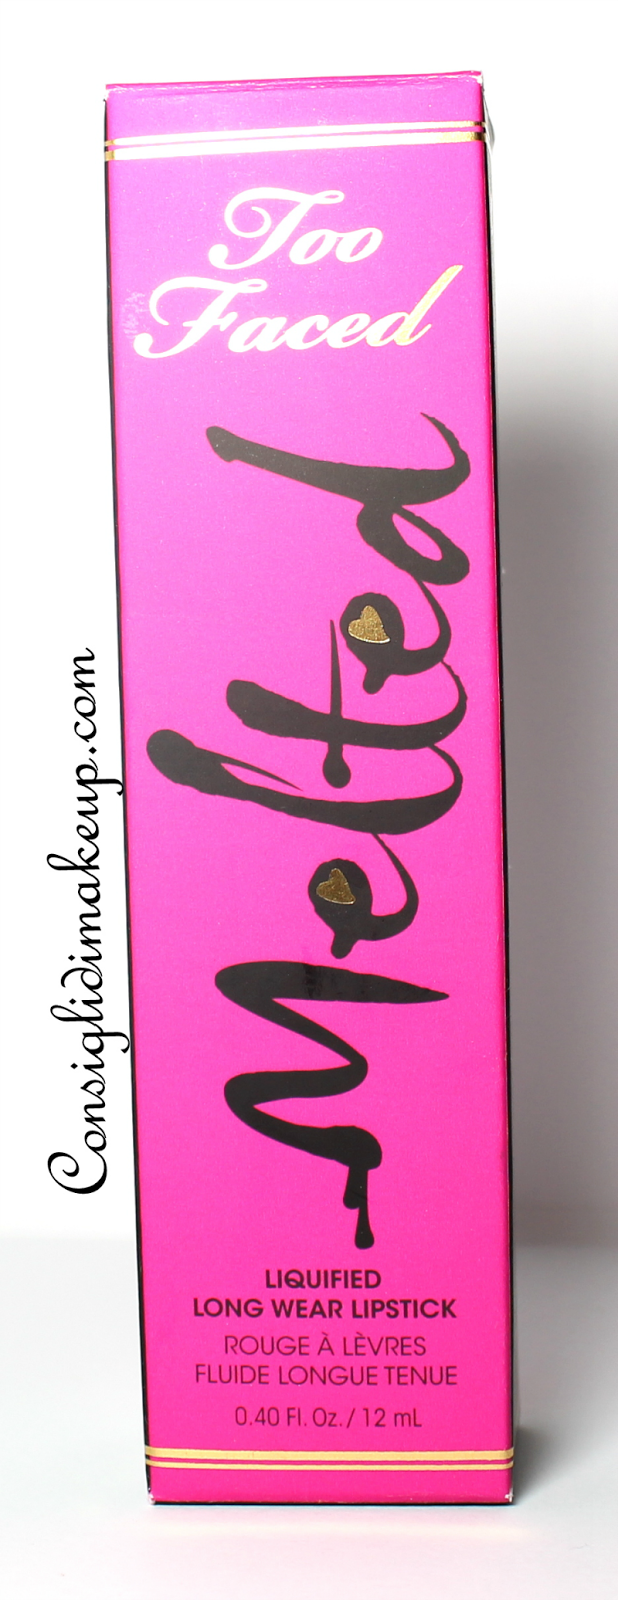 Review: Rossetto Liquido Melted  Fuchsia - Too Faced